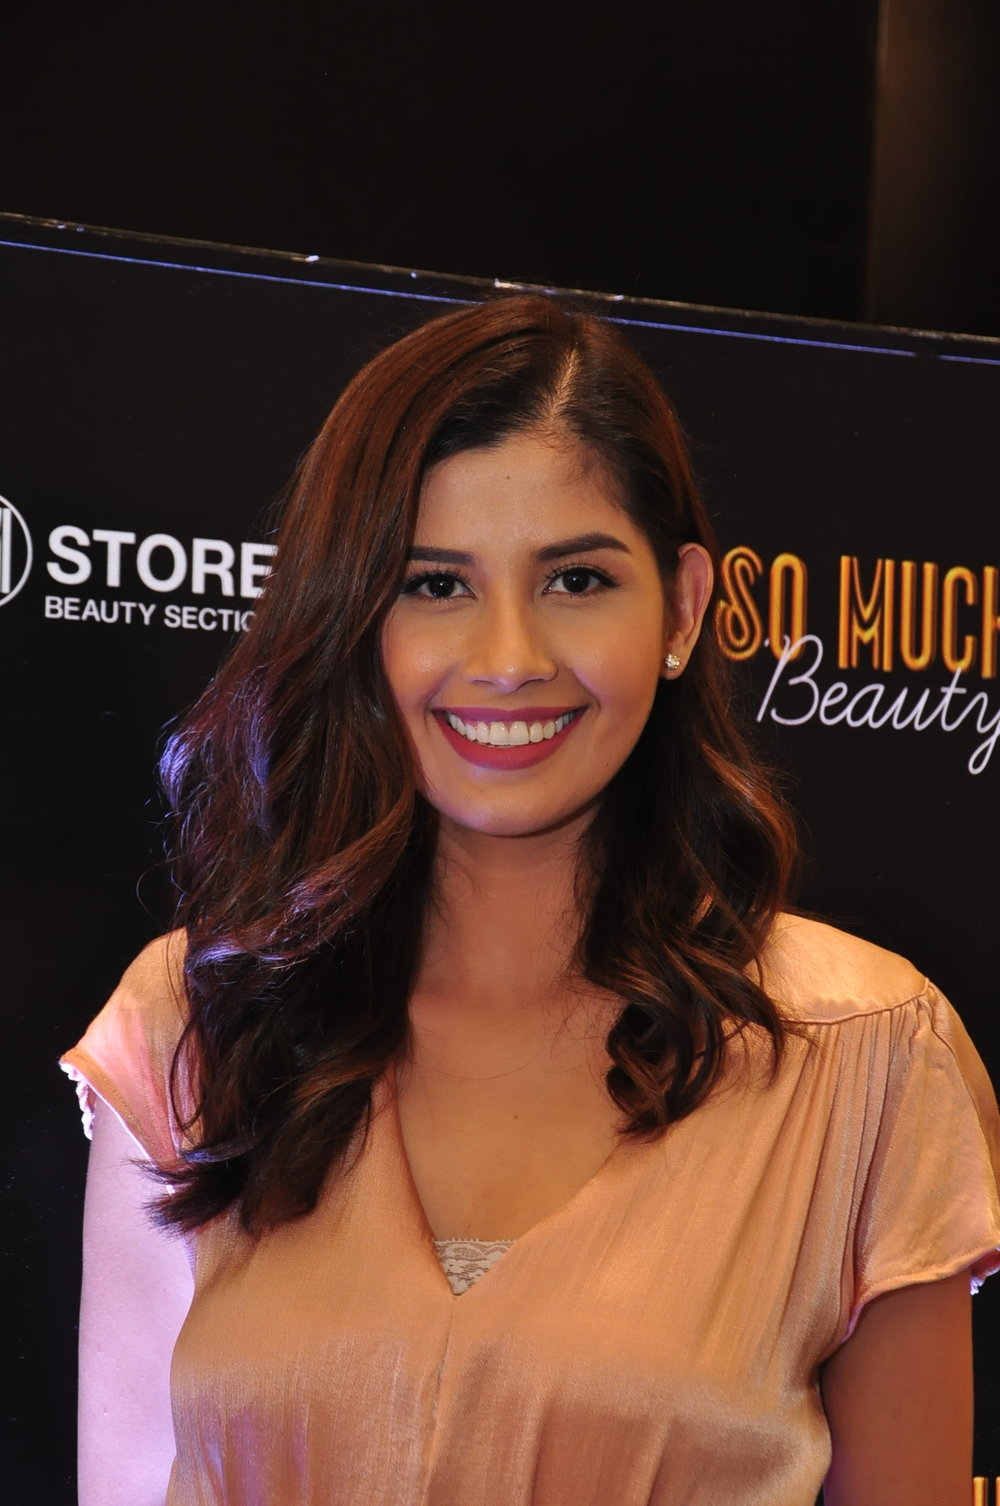 Miss Universe Philippines 2011 Shamcey Supsup-Lee